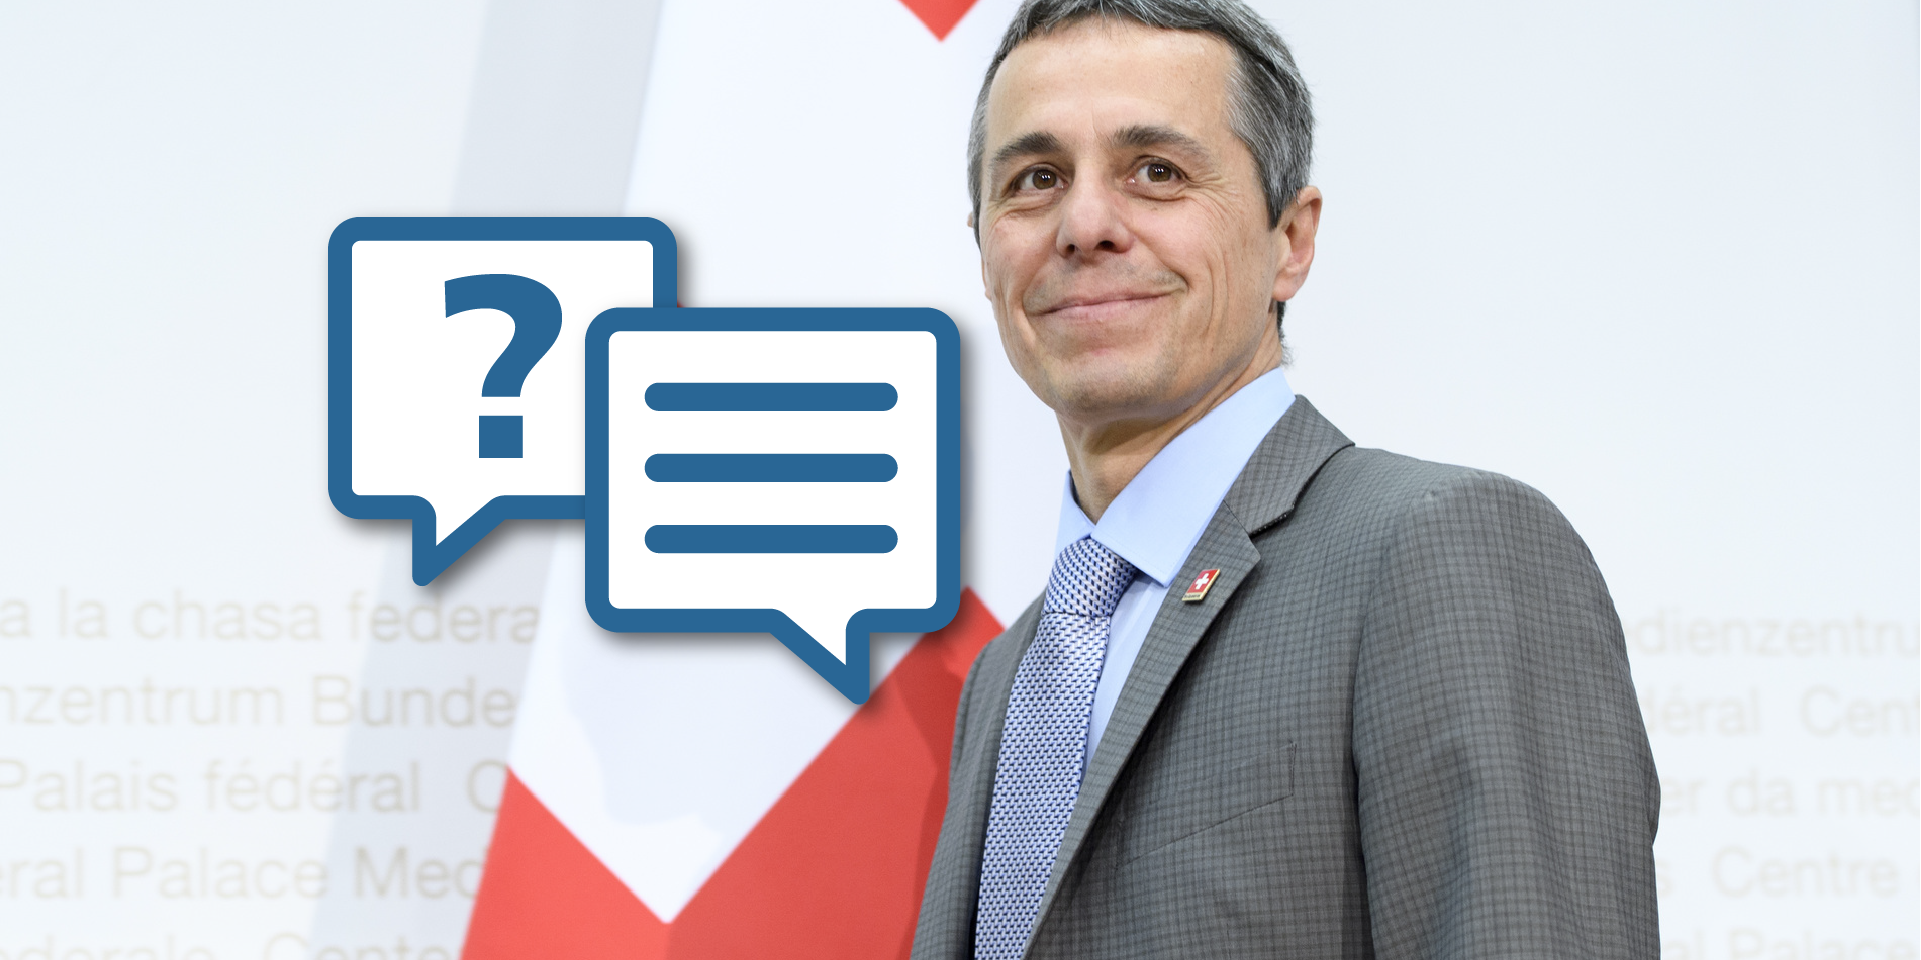 A portrait picture of Federal Councillor Cassis with a graphic motif referring to an interview.